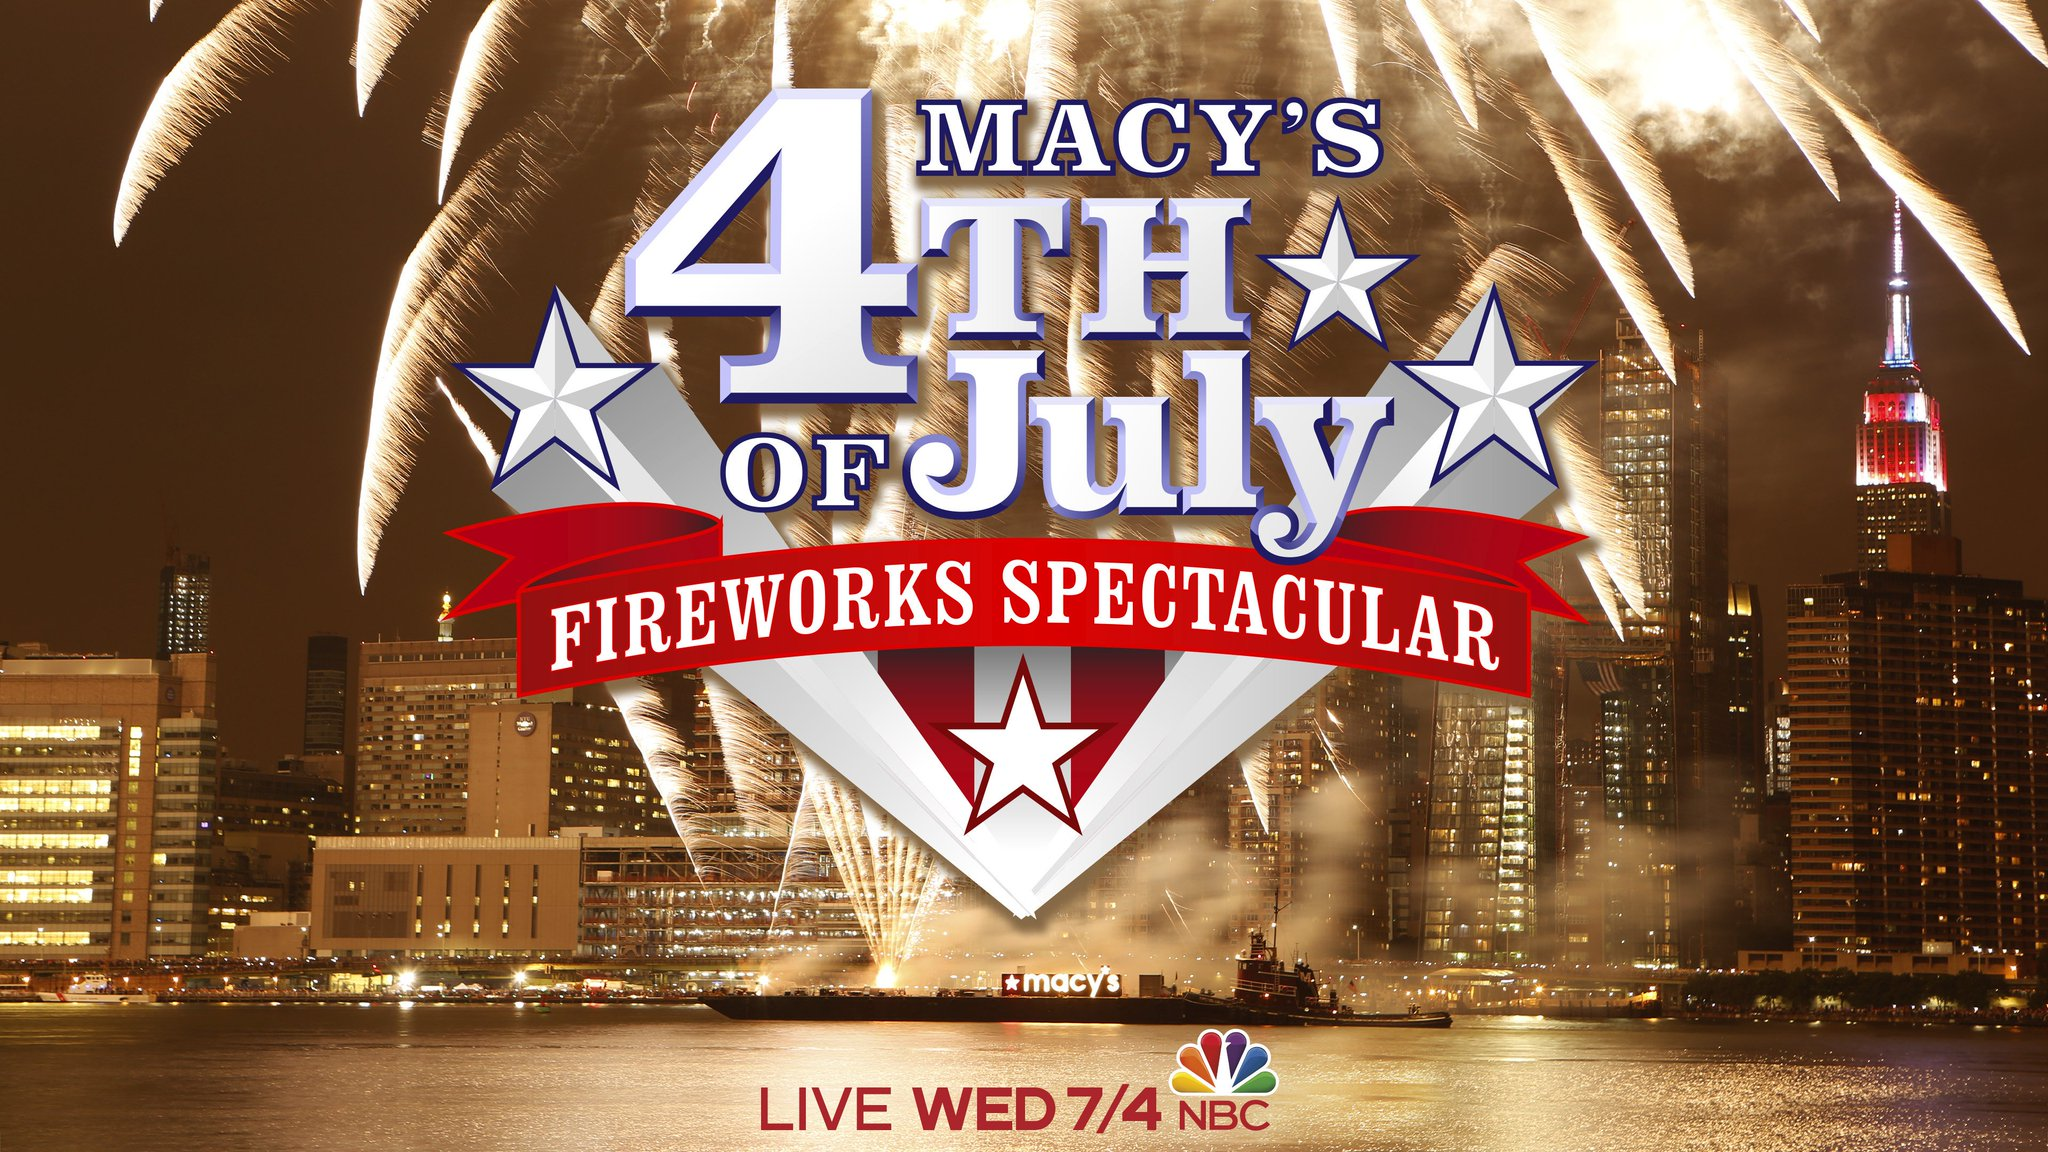 Come celebrate the 4th of July with us y'all! Don't miss Blake's #MacysFireworks performance on @nbc ! �� - Team BS https://t.co/etplCmncvq